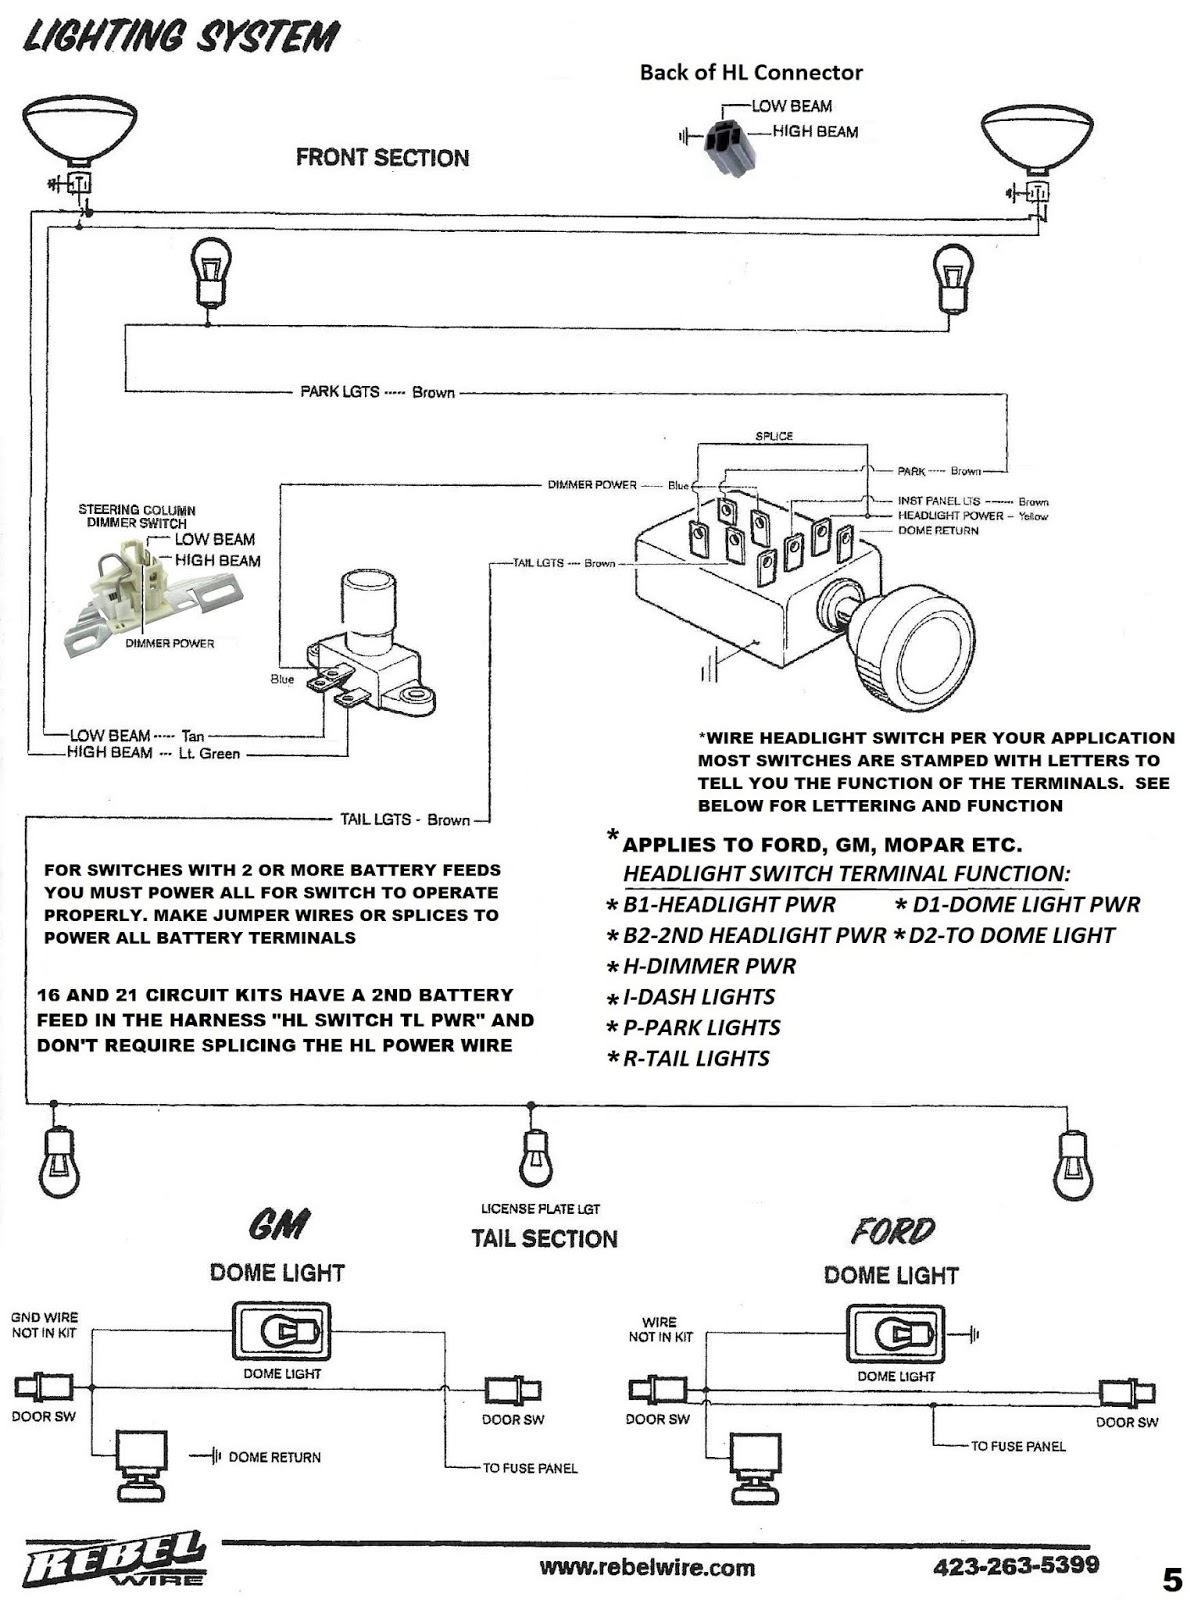 1956 Gm Light Switch Wiring Diagram Worksheet And Headlight 1950 Trusted Diagrams Rh Hamze Co Ignition